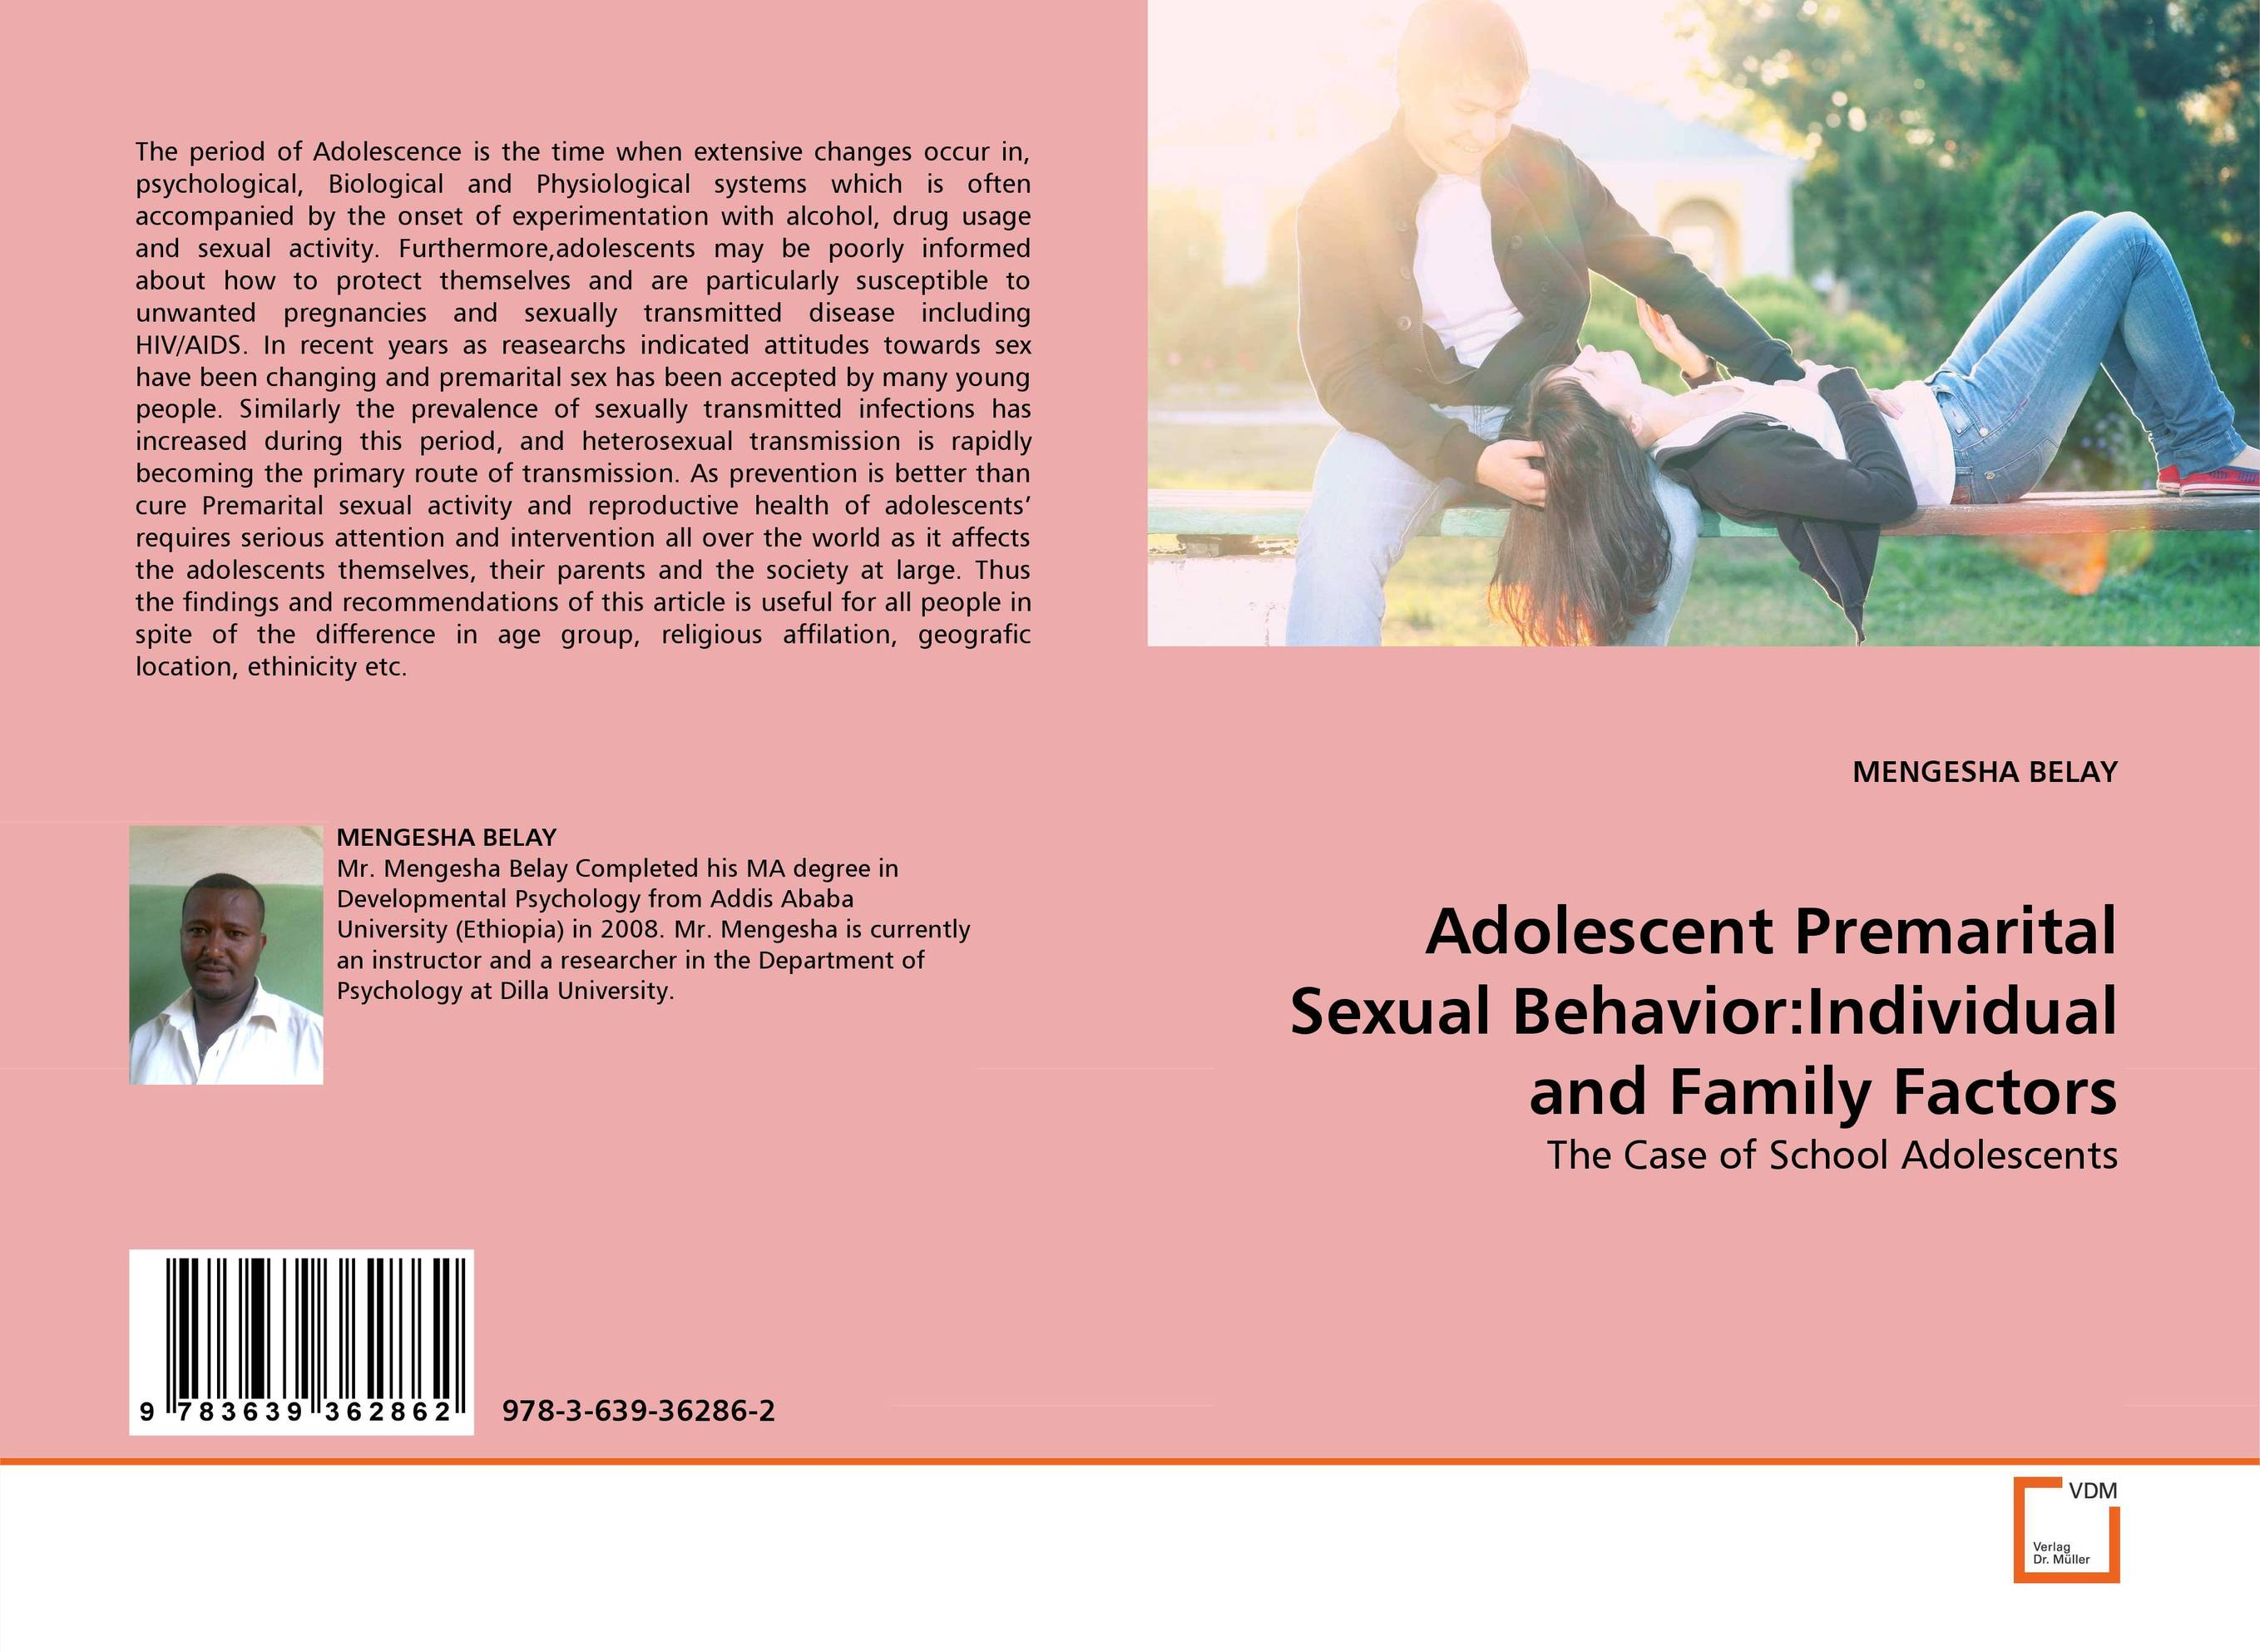 Adolescent Premarital Sexual Behavior:Individual and Family Factors adolescent